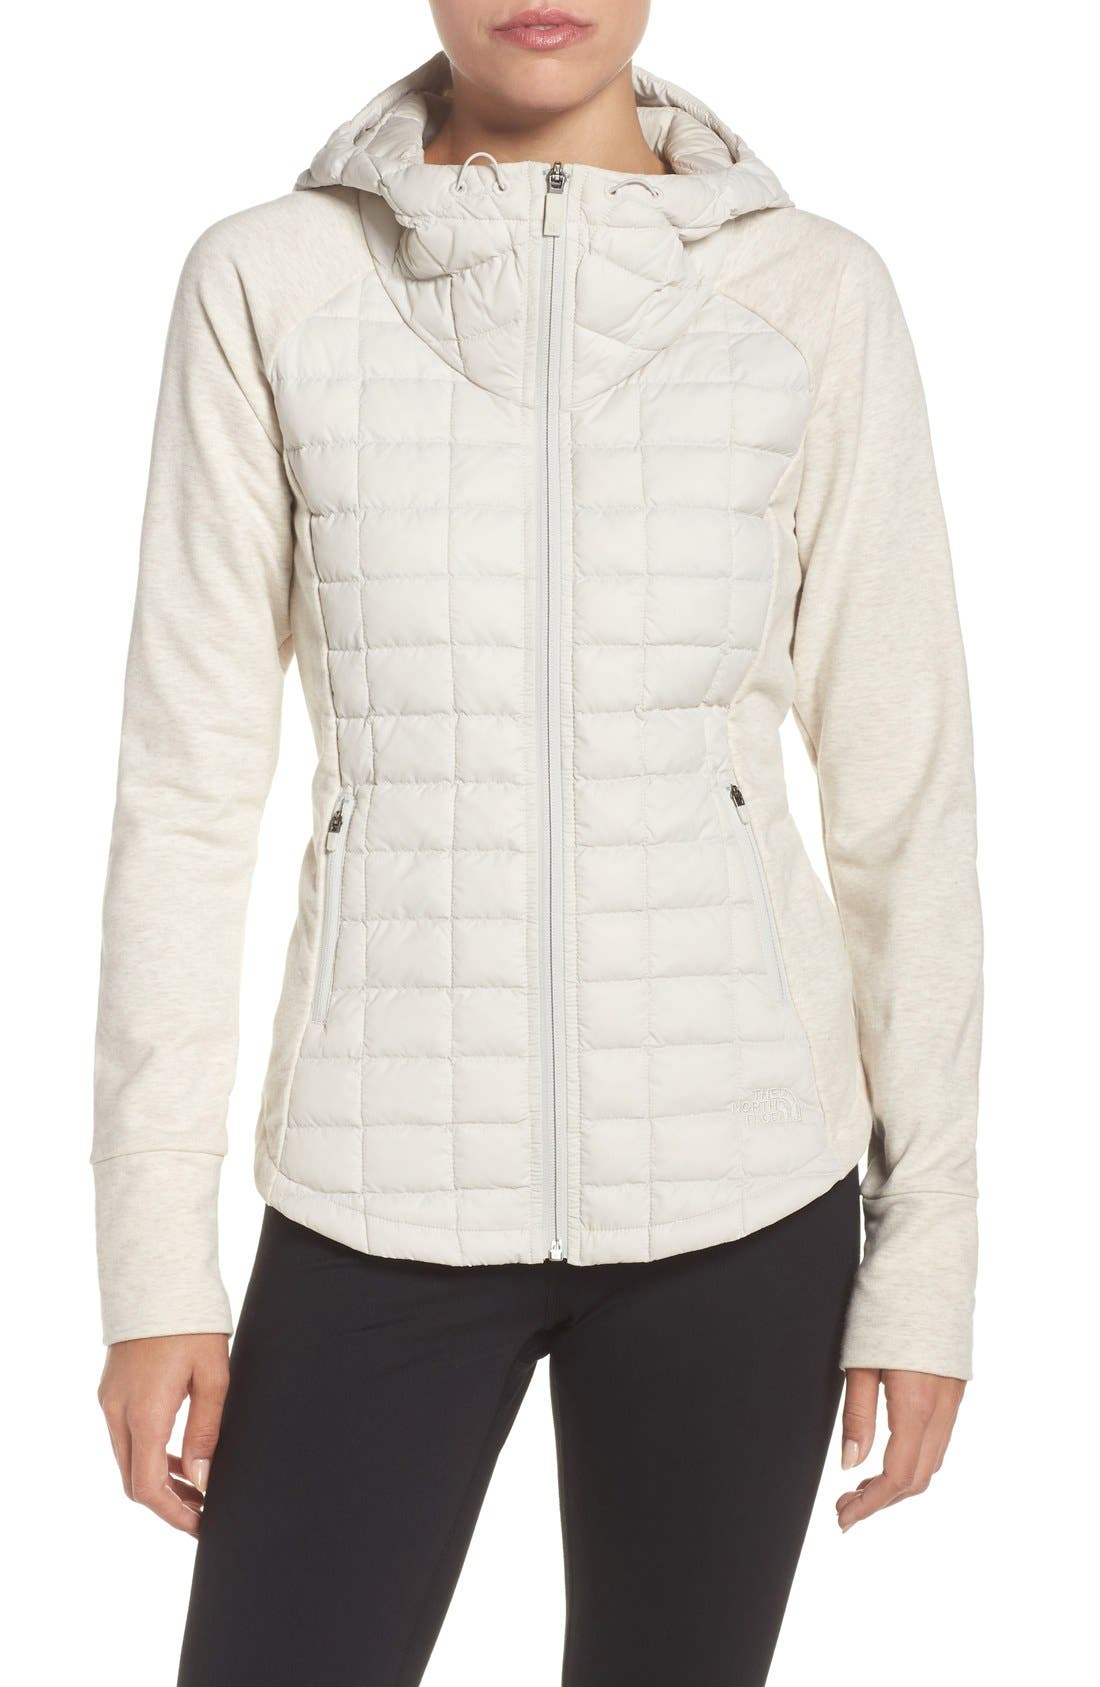 'Endeavor' ThermoBall PrimaLoft<sup>®</sup> Quilted Jacket,                             Main thumbnail 1, color,                             Moonlight Ivory/ Ivory White